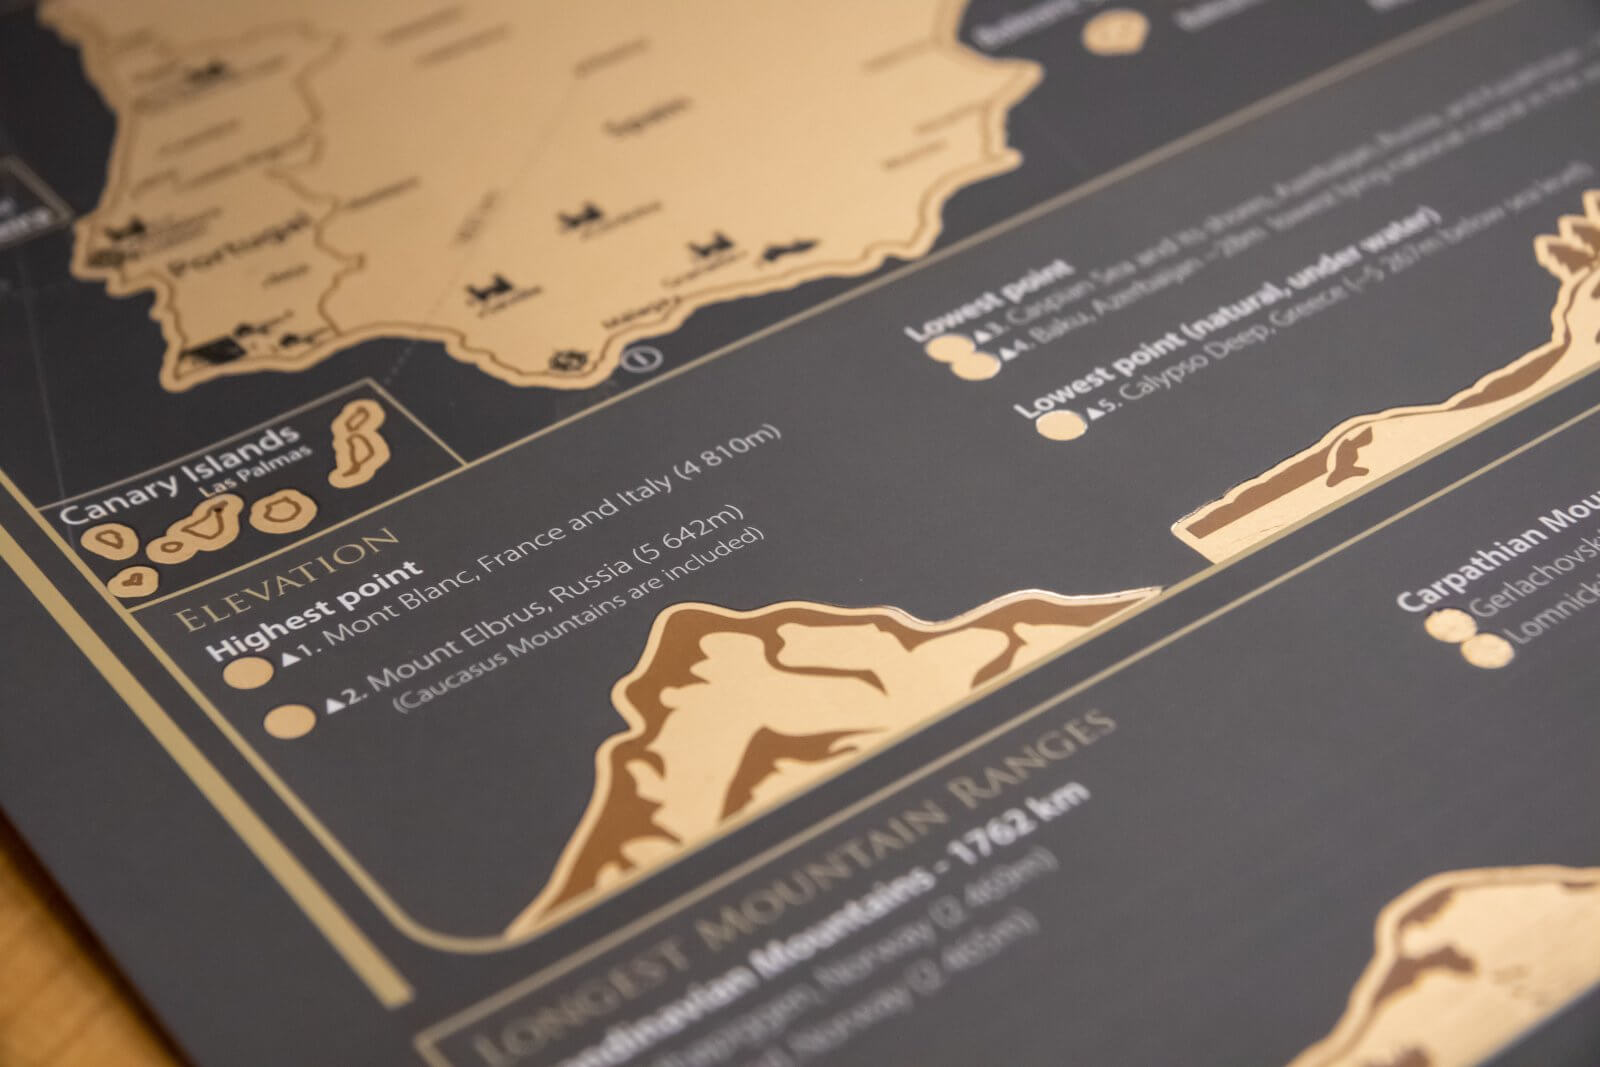 Scratch Map of Europe - Detail of elevation